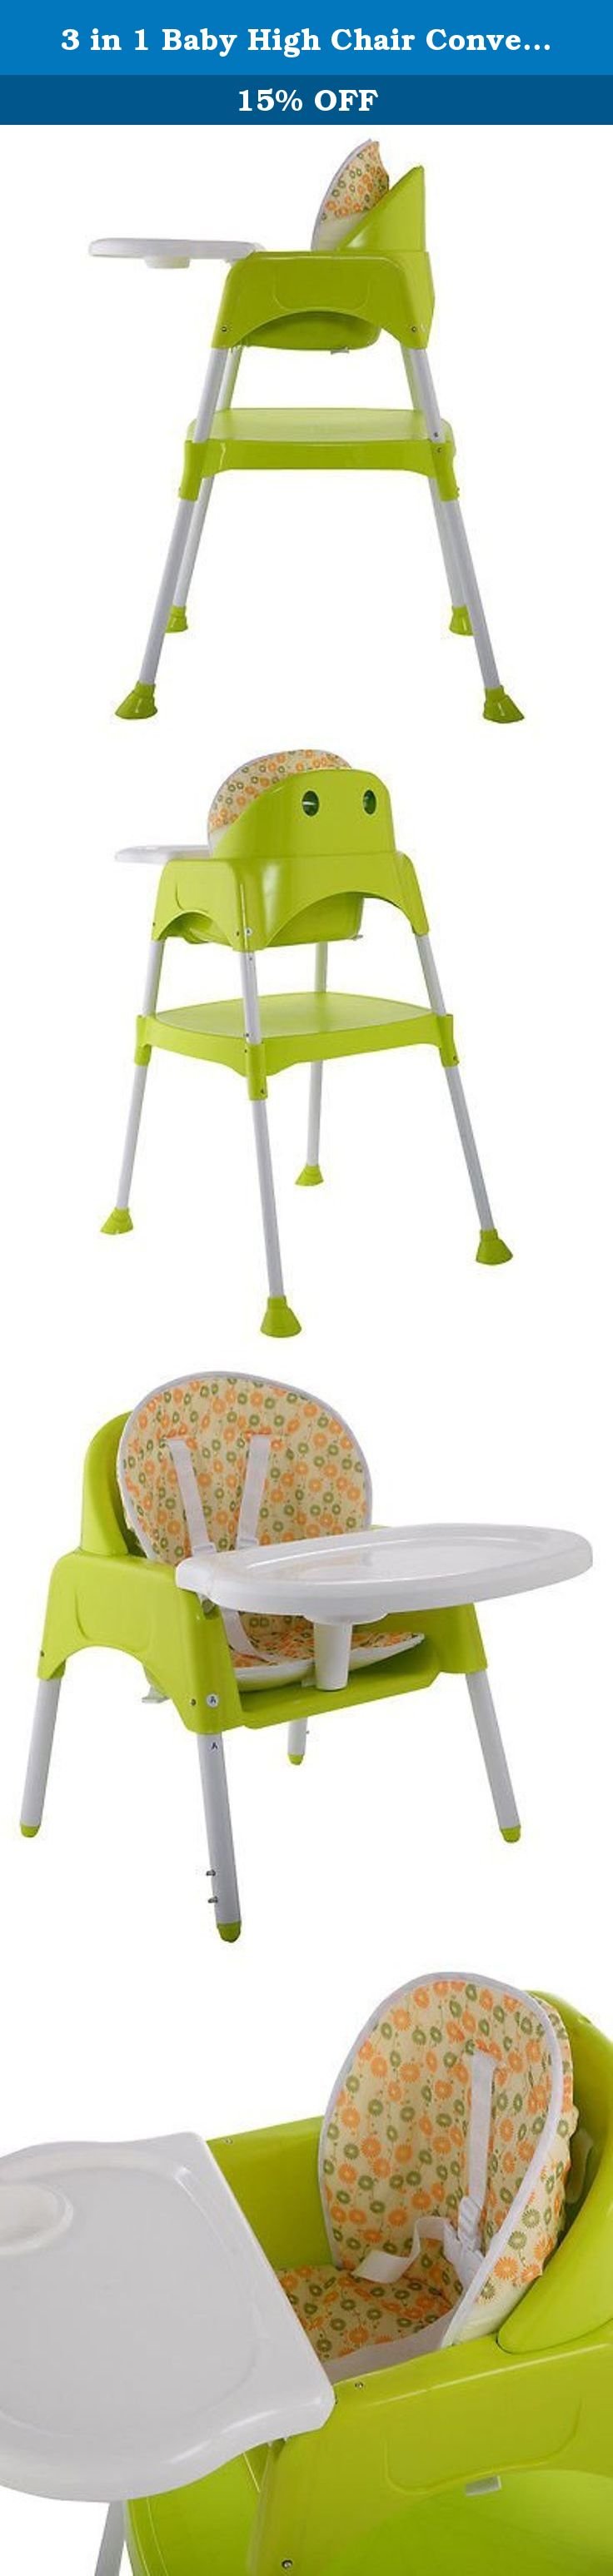 3 In 1 Baby High Chair Convertible Table Seat Booster Toddler Feeding  Highchair. This Convertible